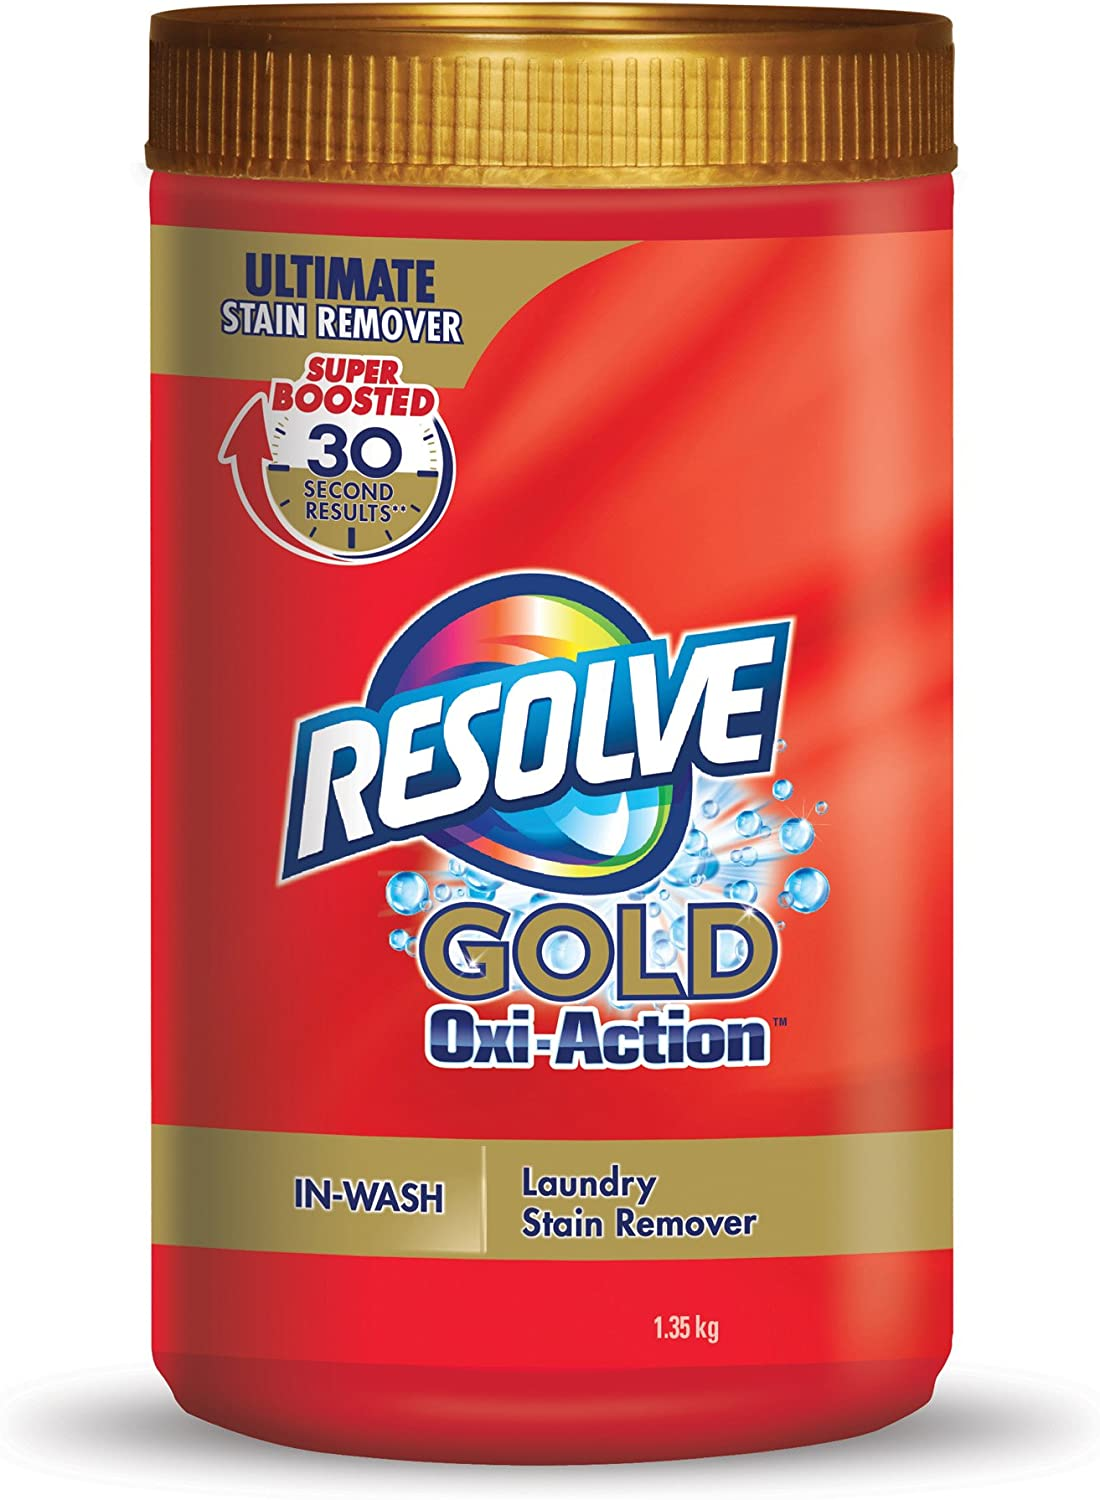 Resolve Gold Oxi Action in-Wash Powder Stain Remover - 48 Oz / 1.35 Kg